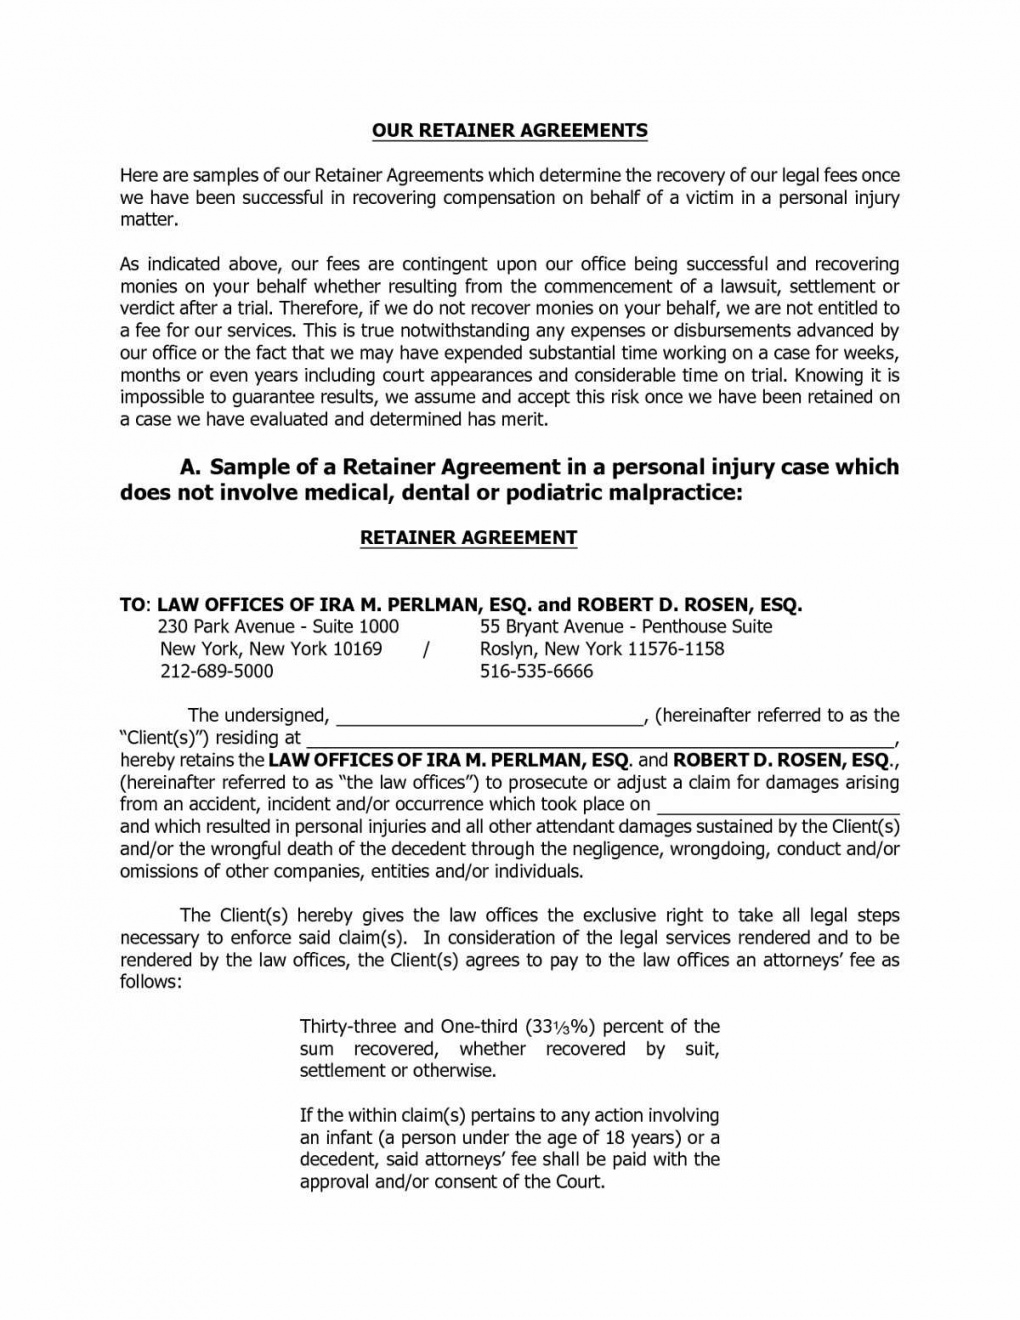 retainer fee and compensation agreement letter sample  retainership legal retainer agreement template sample